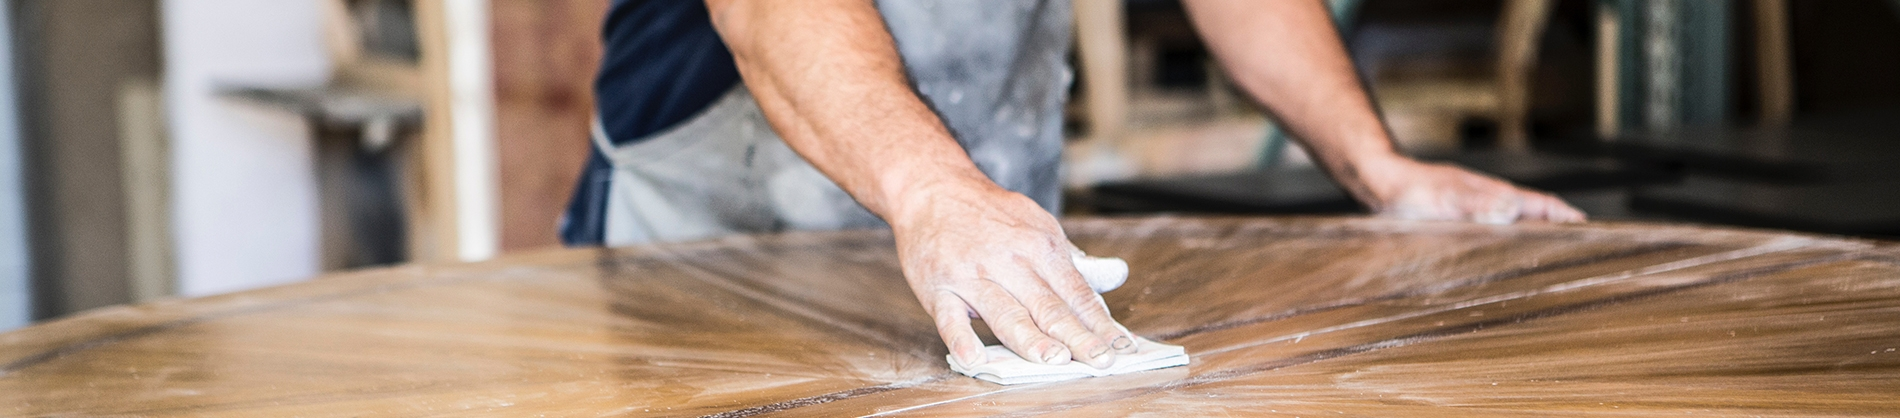 A man sanding down a wooden table